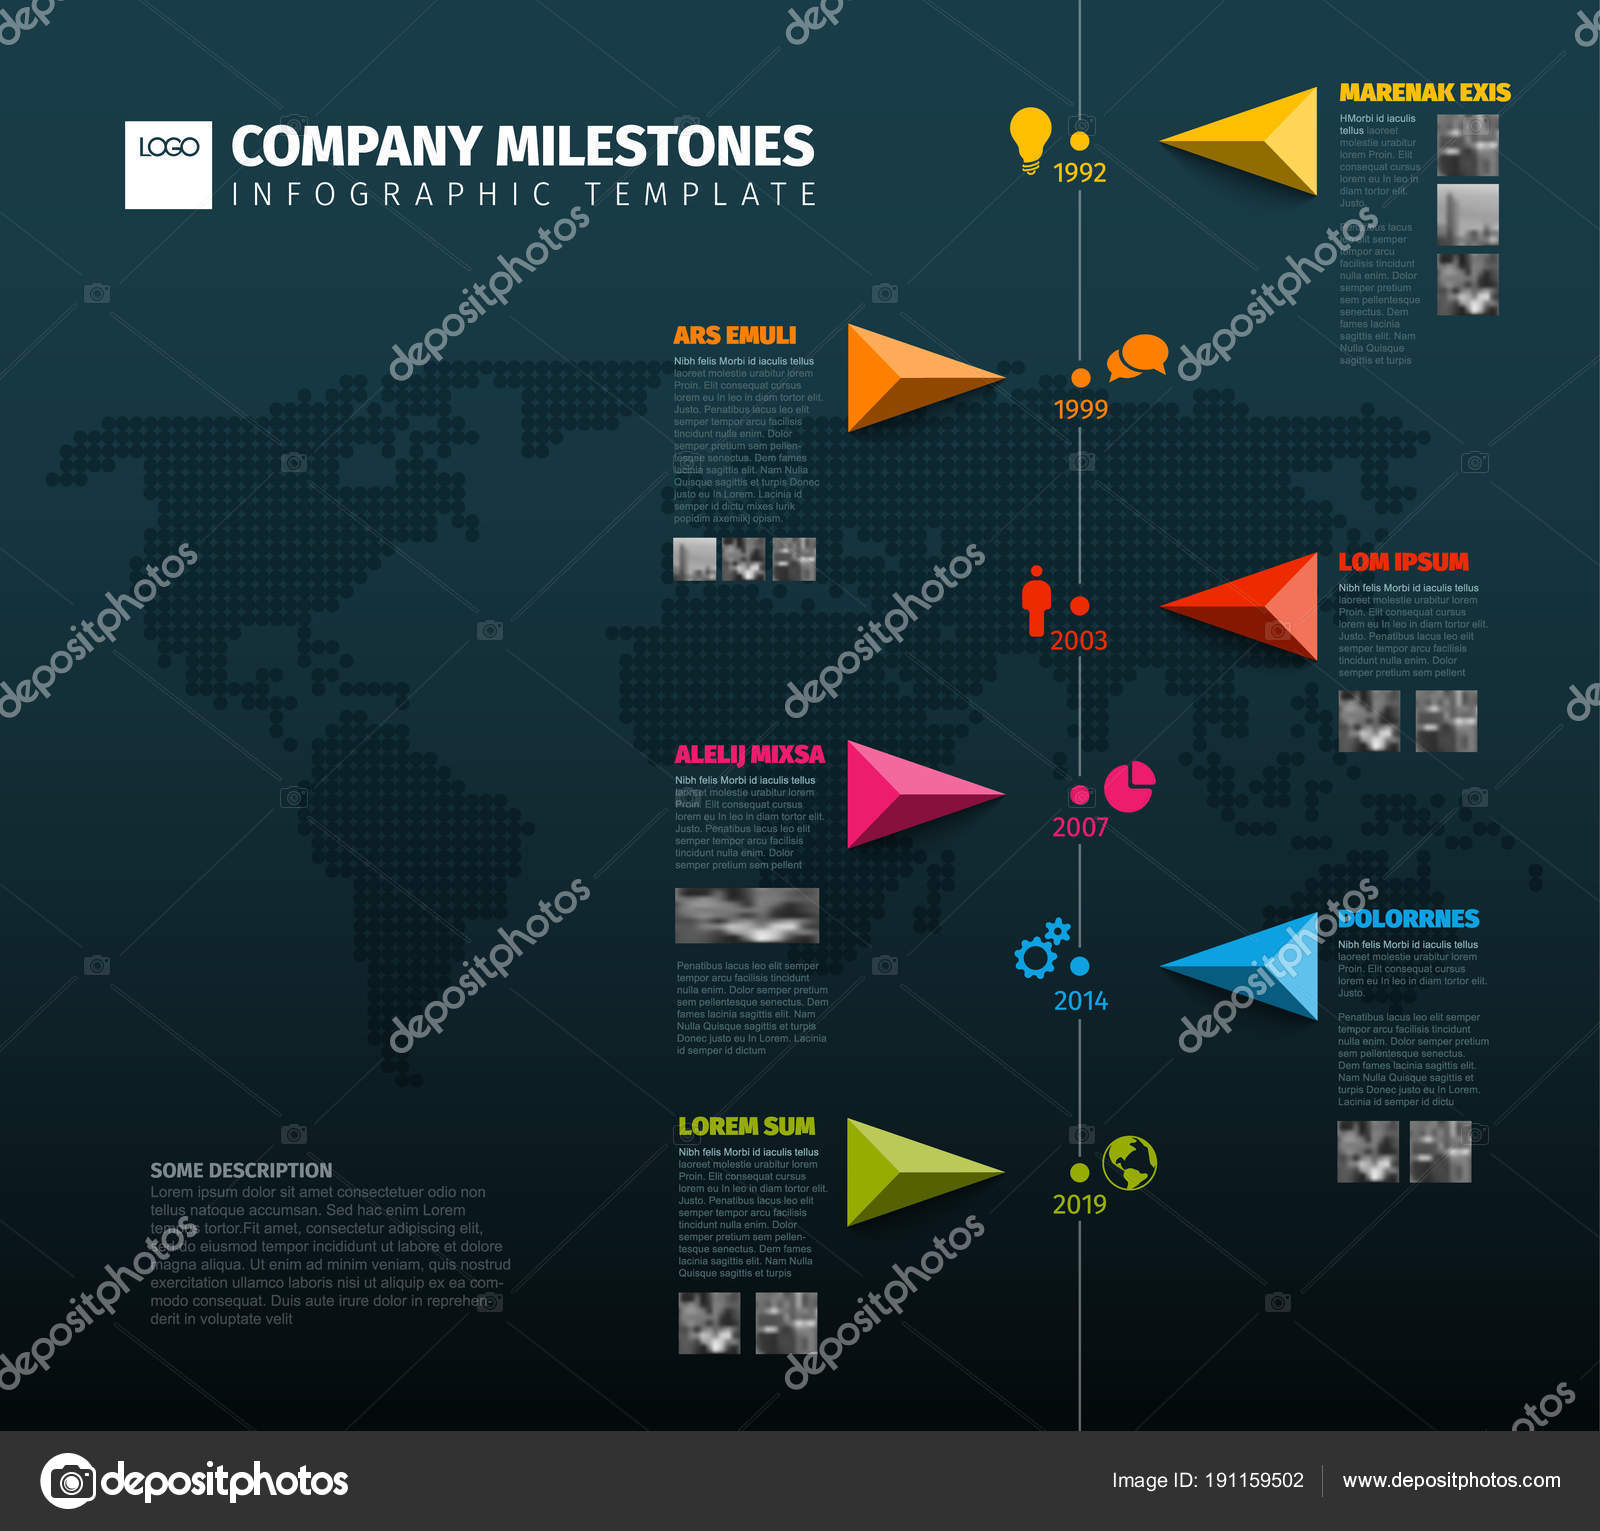 Vector infographic company milestones timeline template pointers vector infographic company milestones timeline template pointers line world map stock vector gumiabroncs Image collections